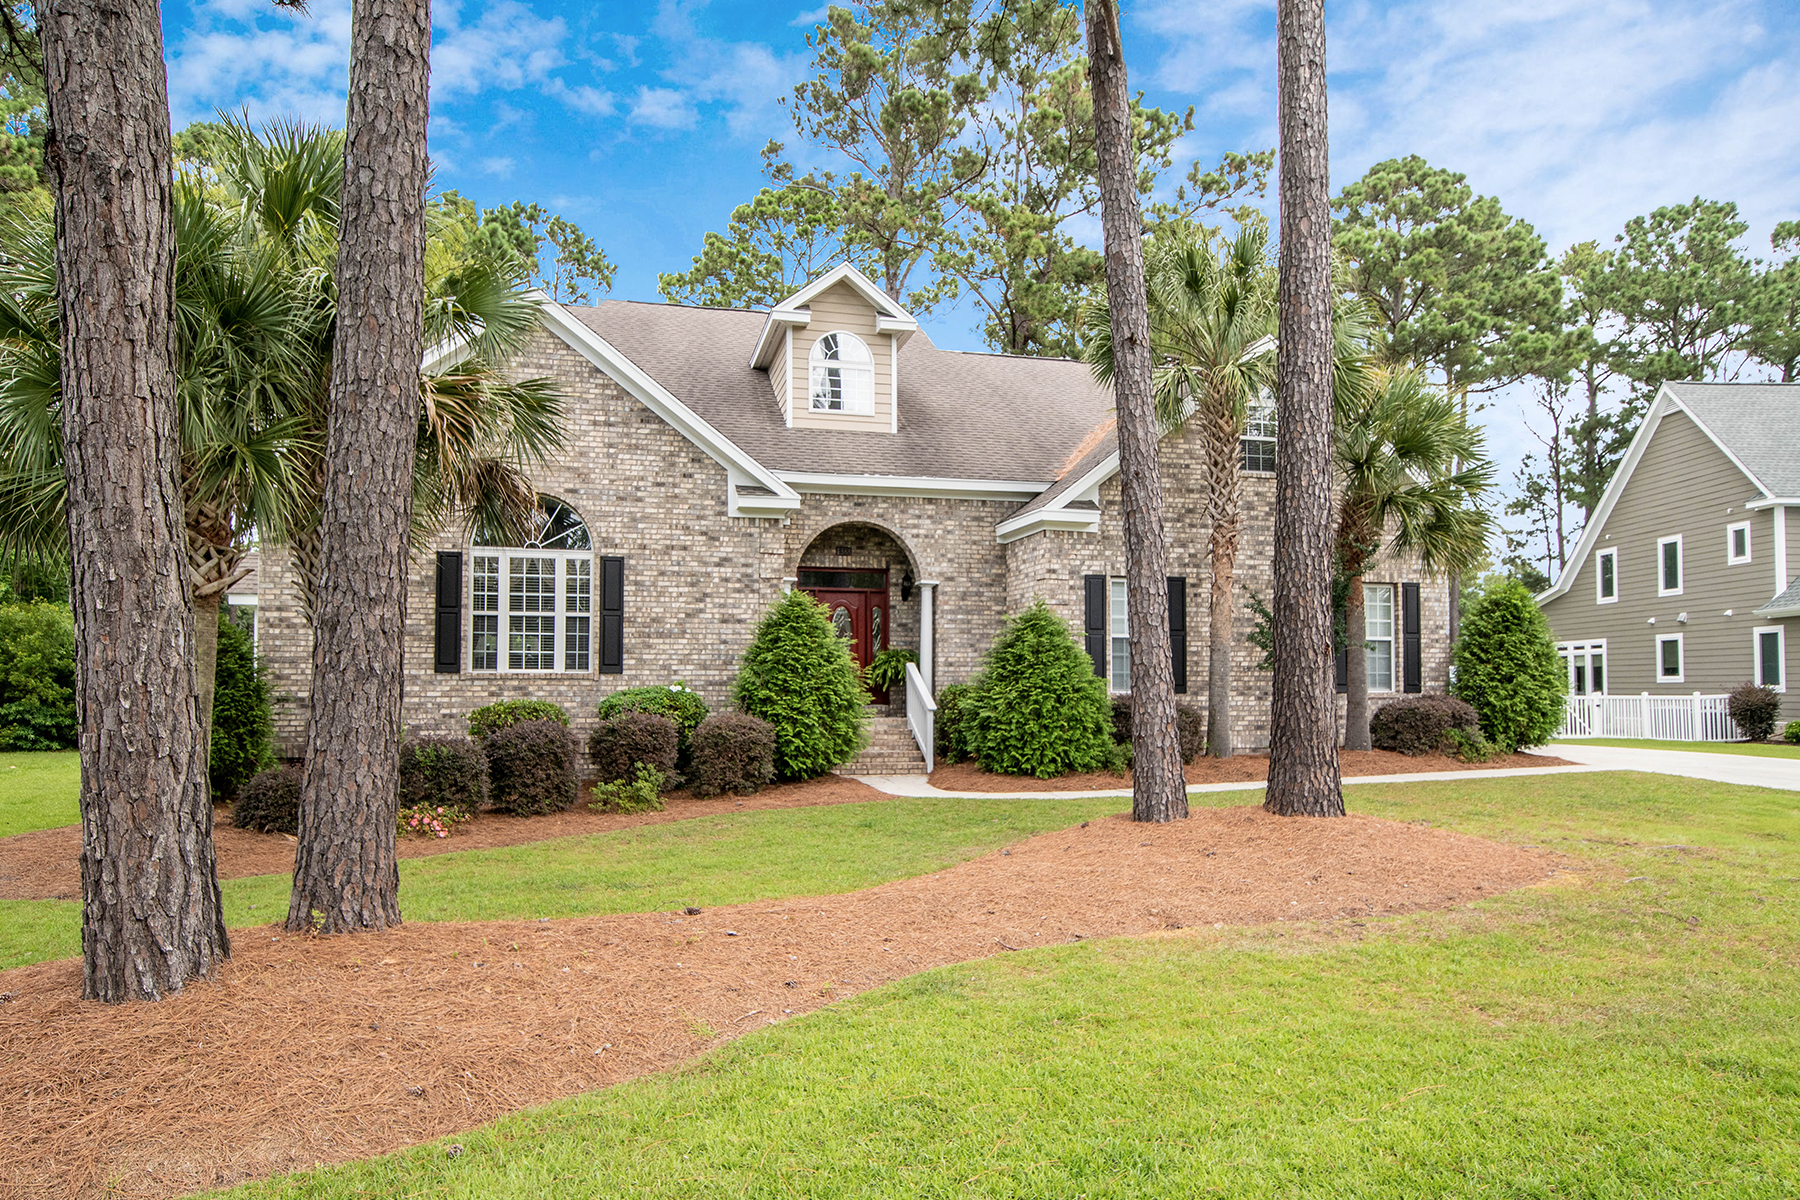 Single Family Homes for Active at 1388 McMaster Drive Myrtle Beach, South Carolina 29575 United States